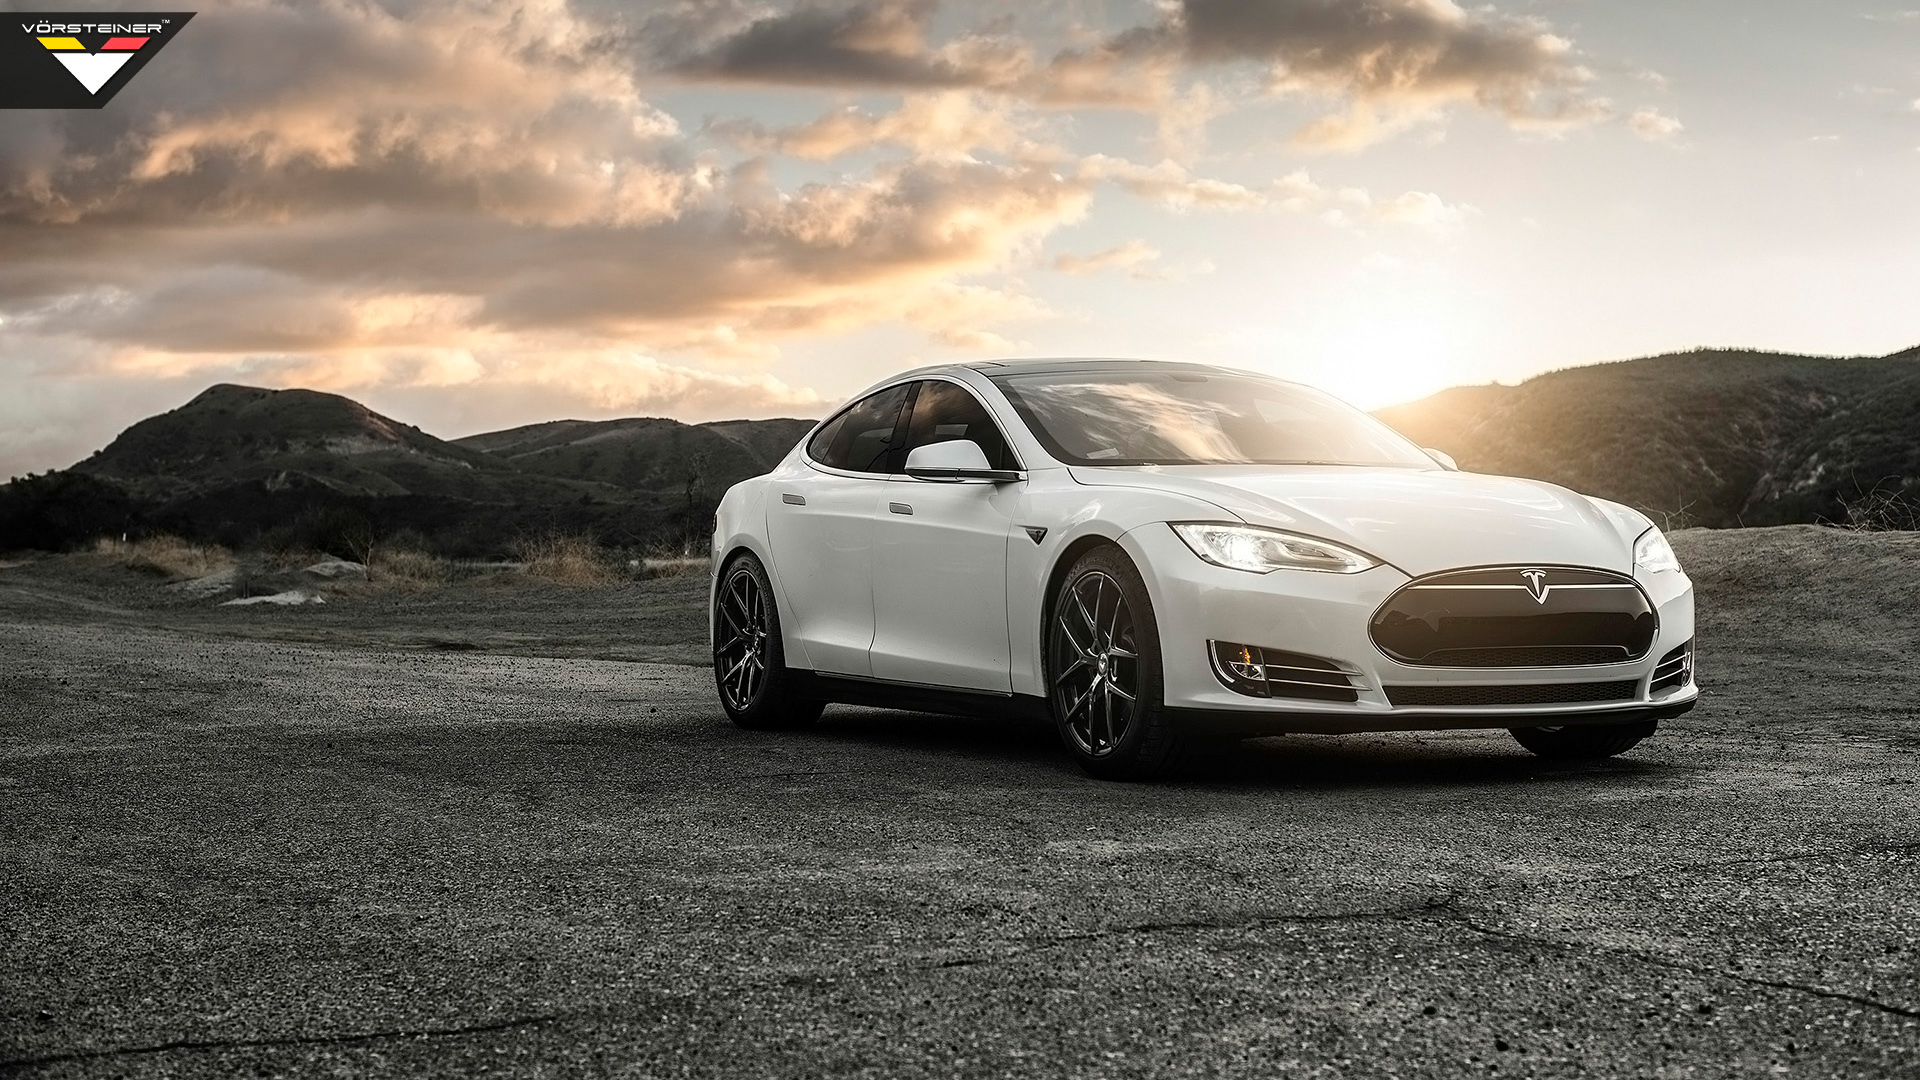 4944 views 2014 Vorsteiner Tesla Model S P85